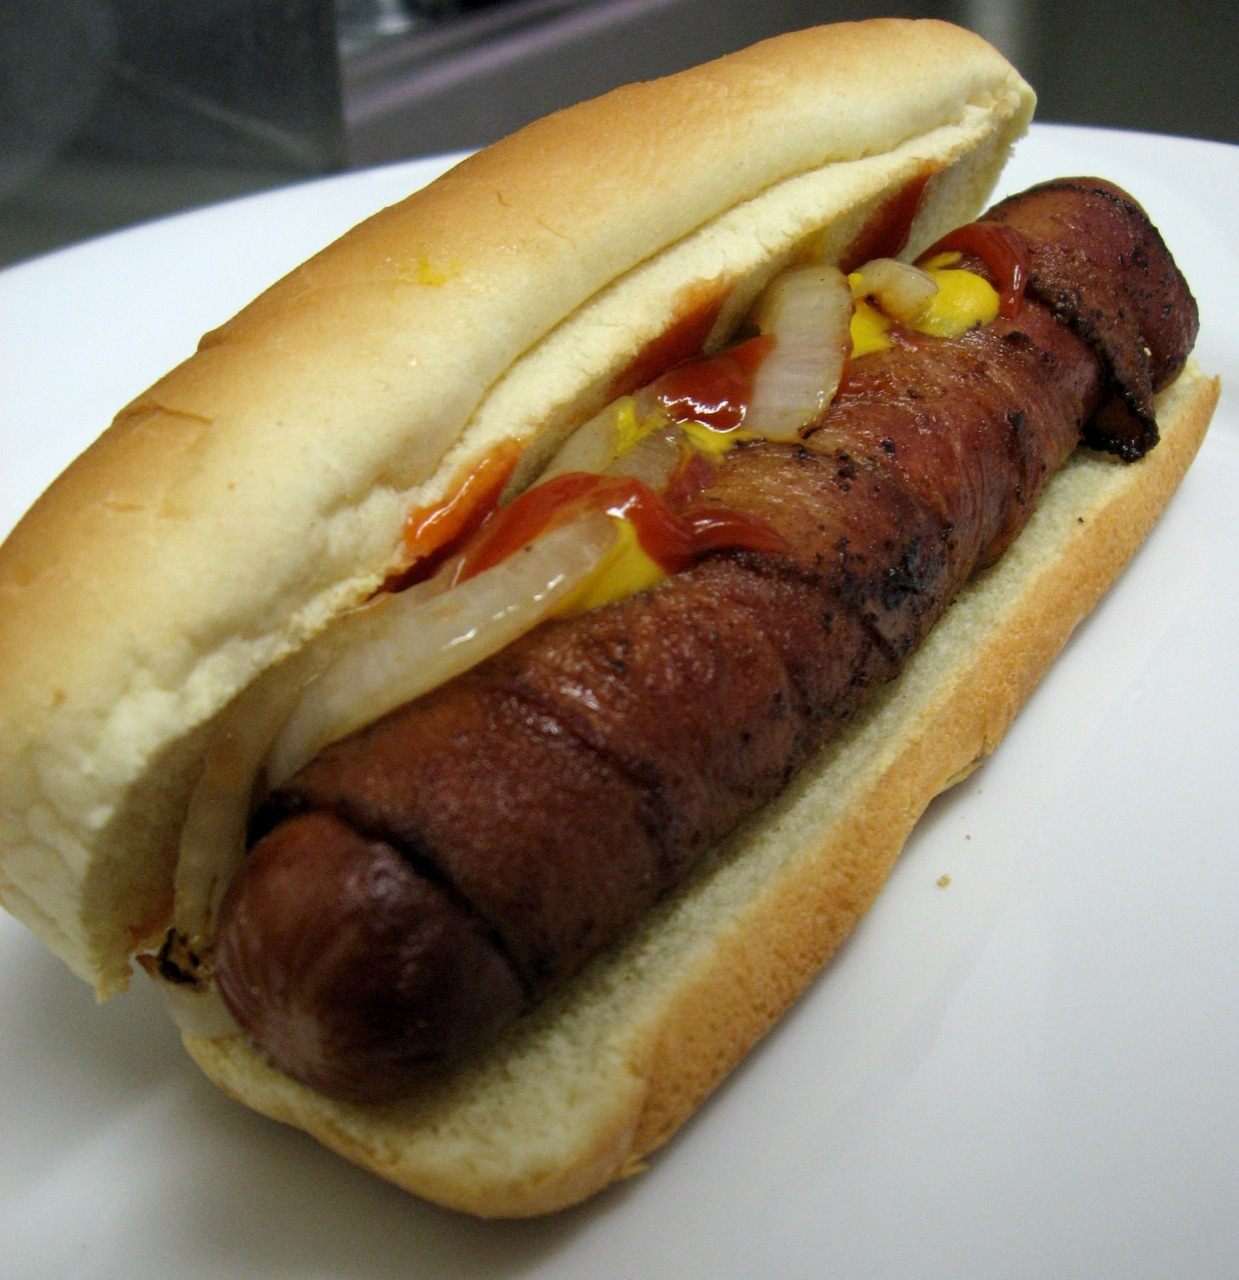 Bacon-wrapped Hot Dog - photo by Arnold Gatilao under CC BY 2.0